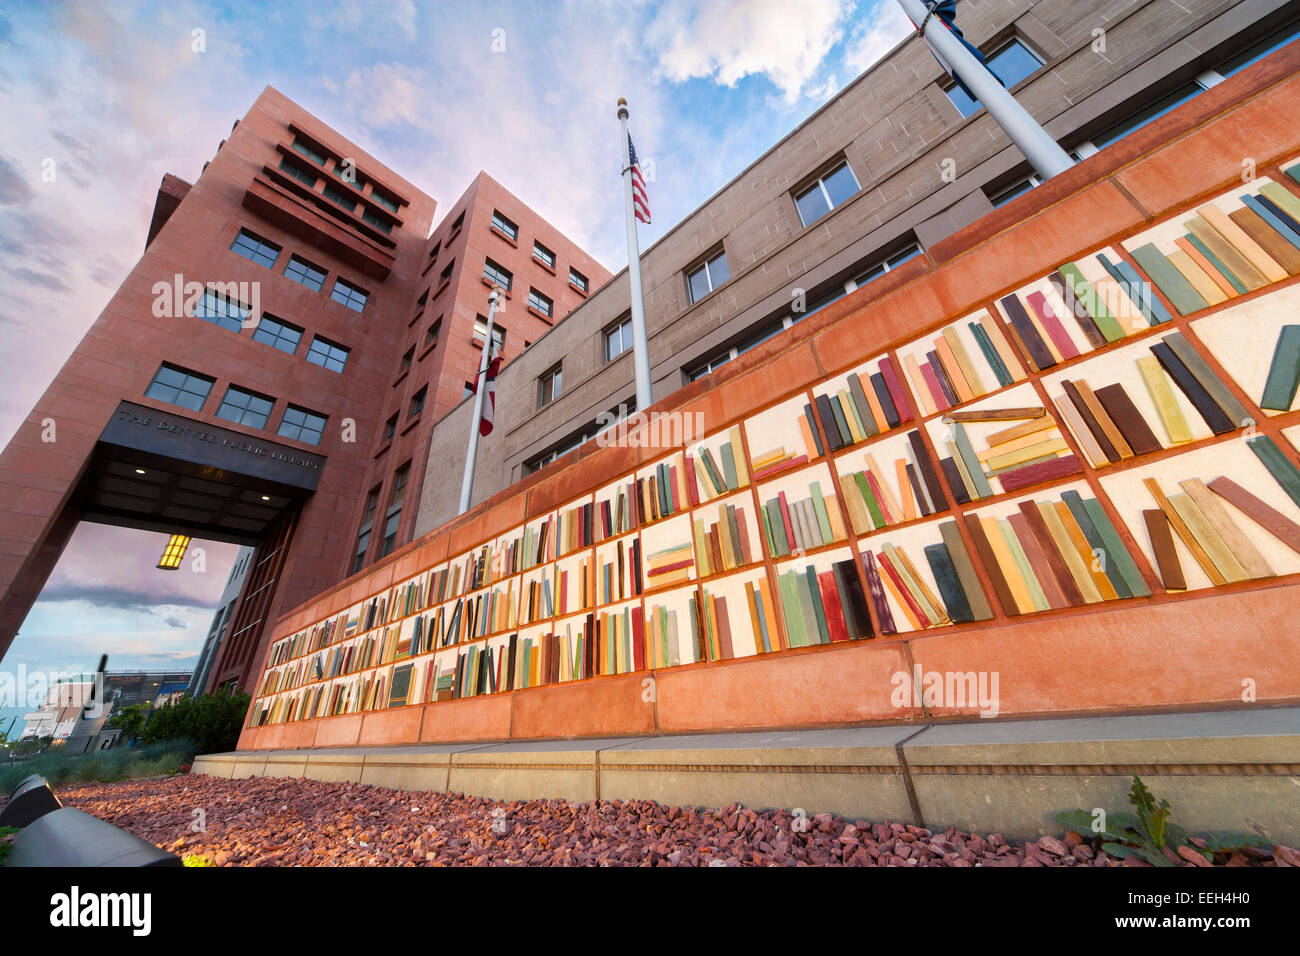 denver-public-library-exterior-with-cera